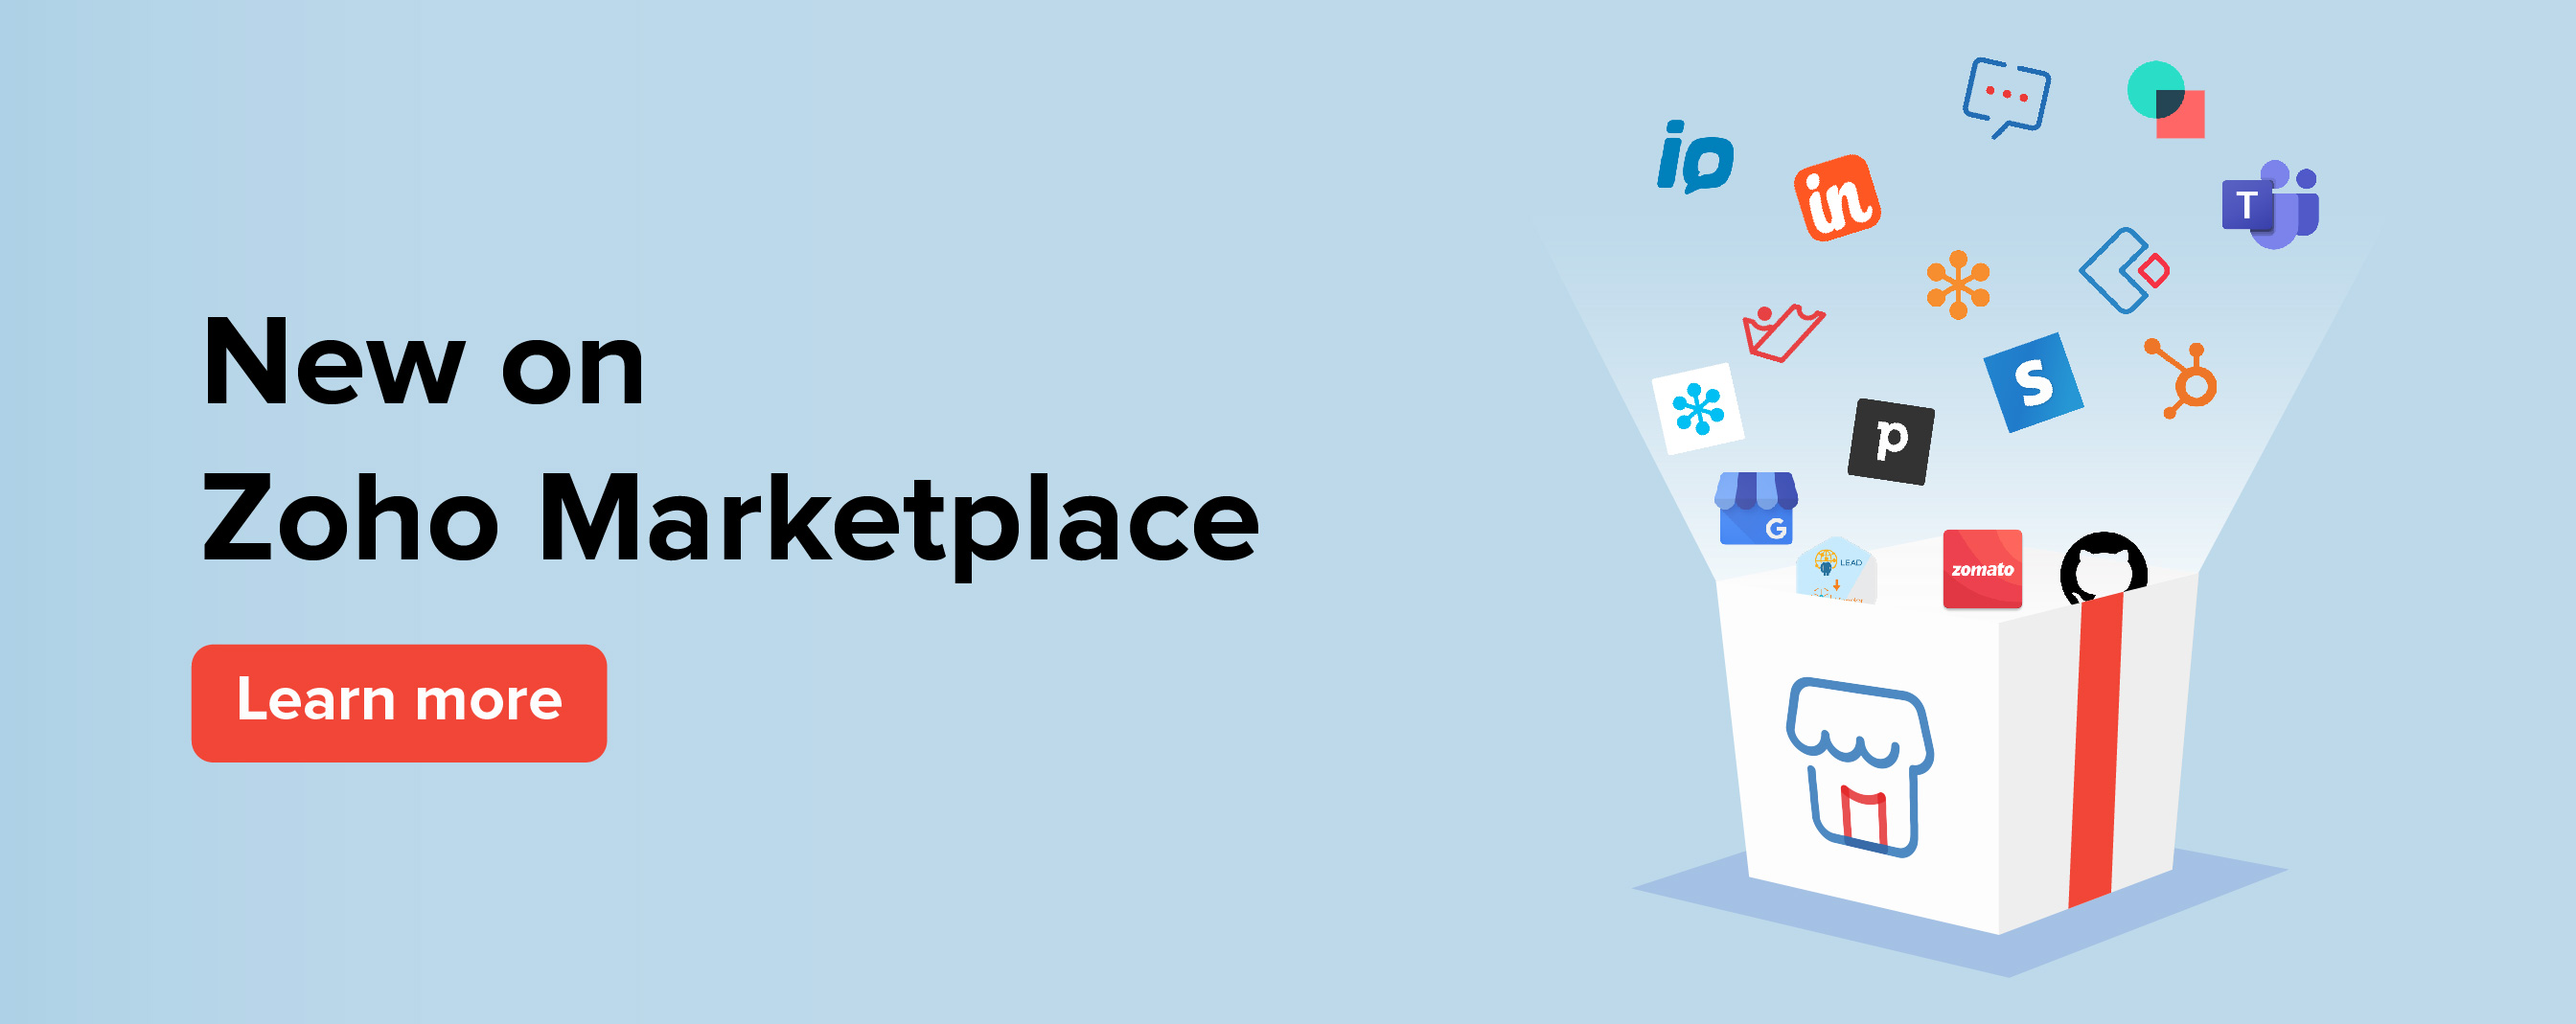 See what's new on Zoho Marketplace for February 2020